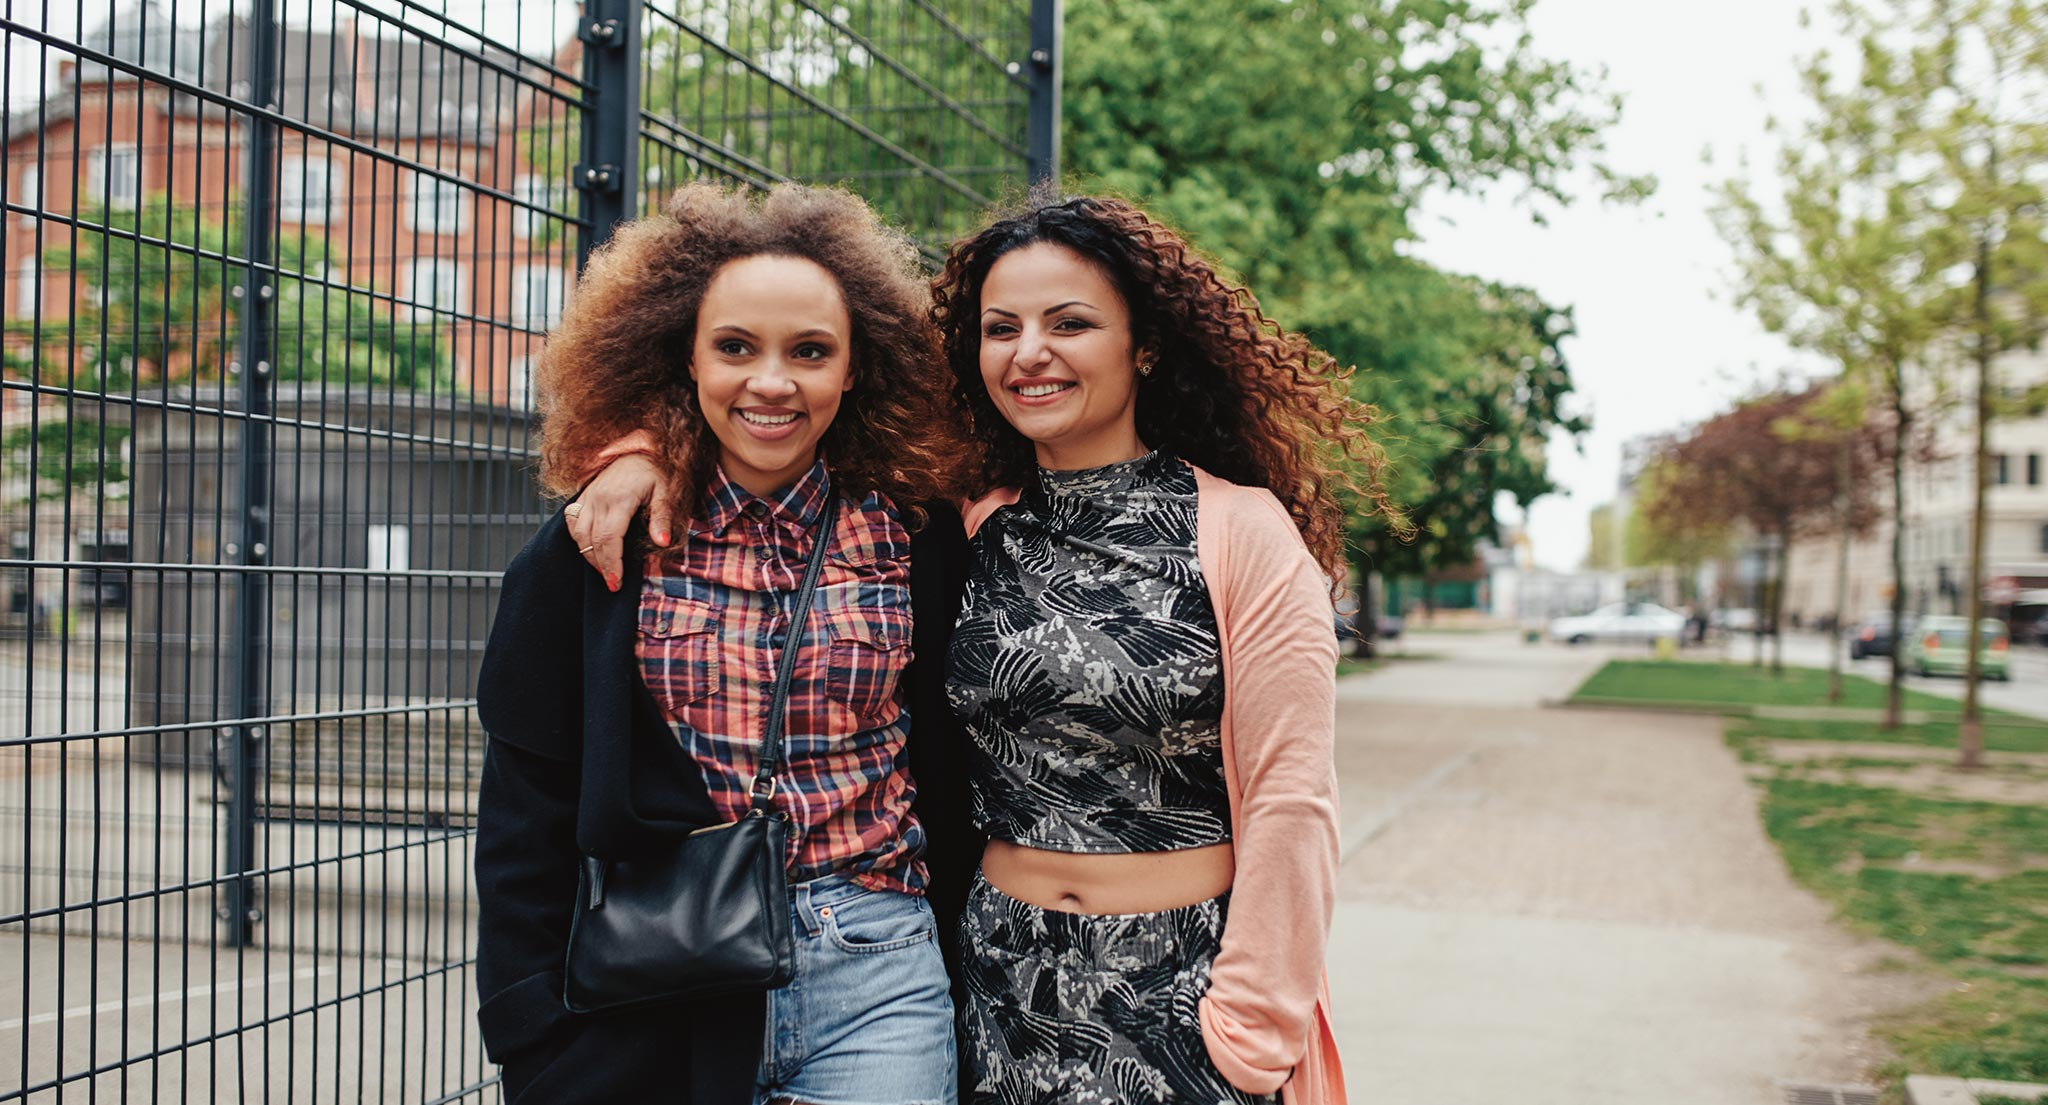 Two women smiling. One women has her arm around the other ones shoulders.